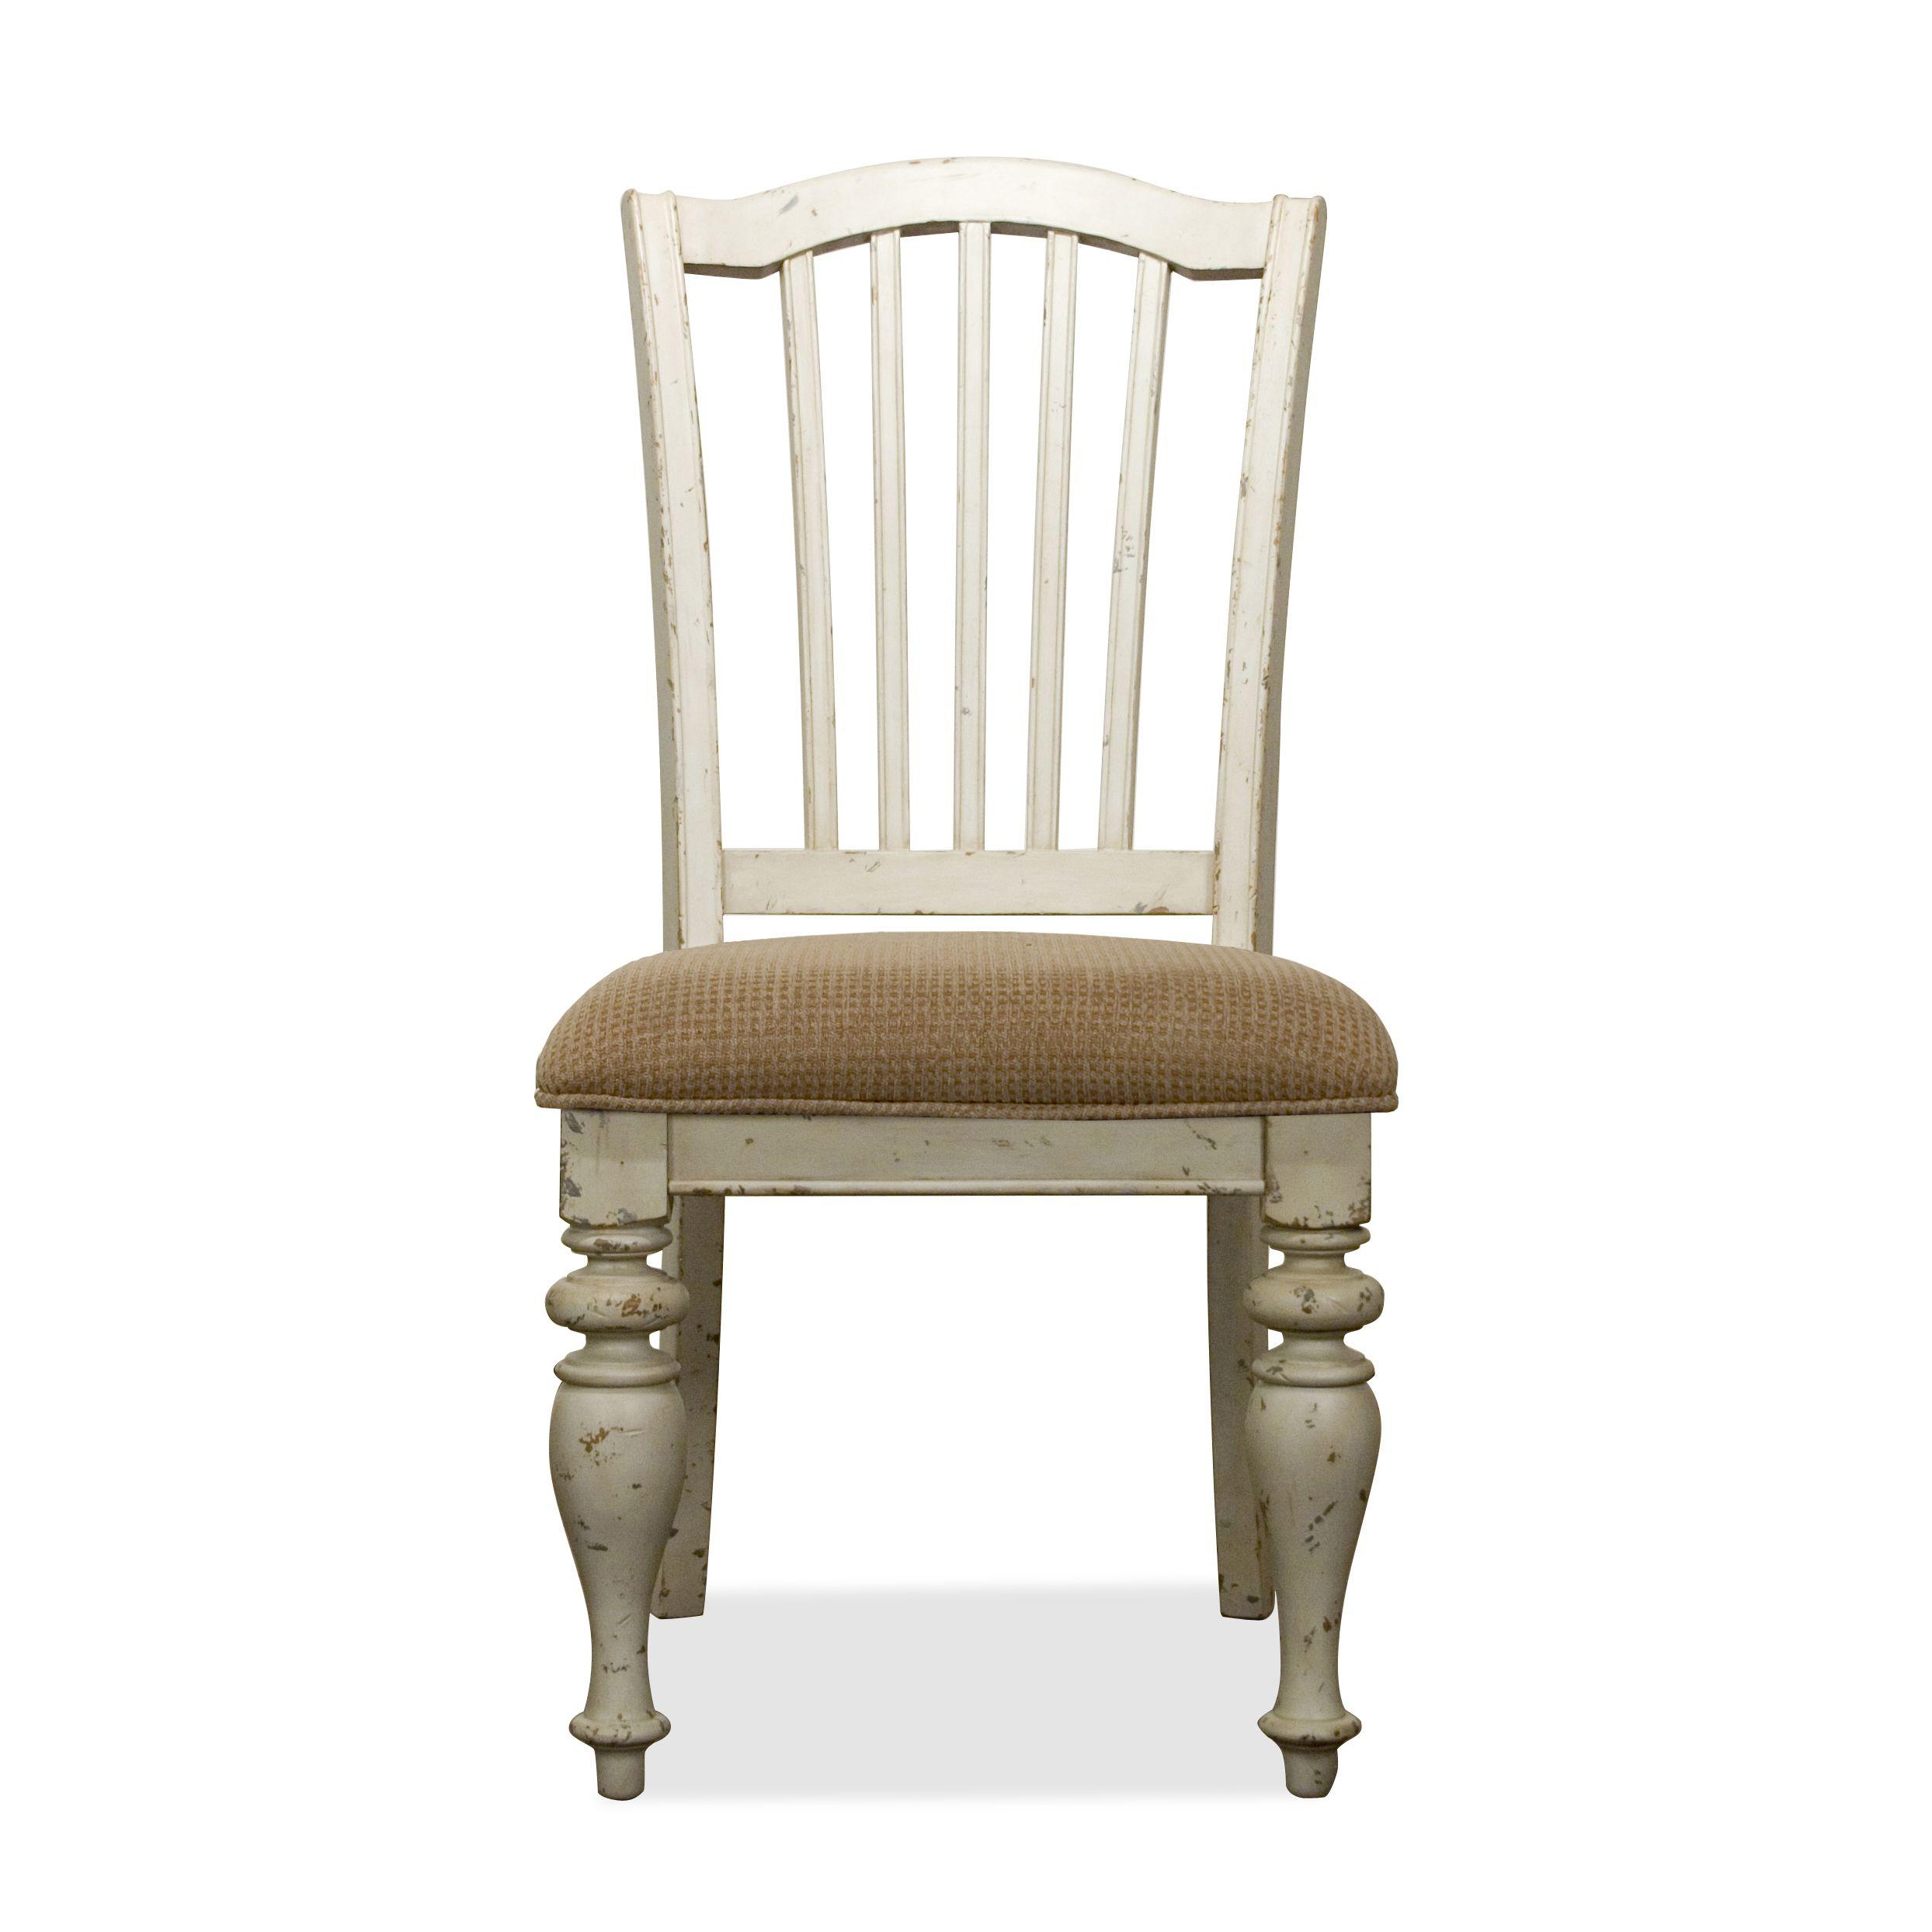 Riverside Furniture Mix-N-Match Chairs Upholstered Side Chair - Item Number: 36456